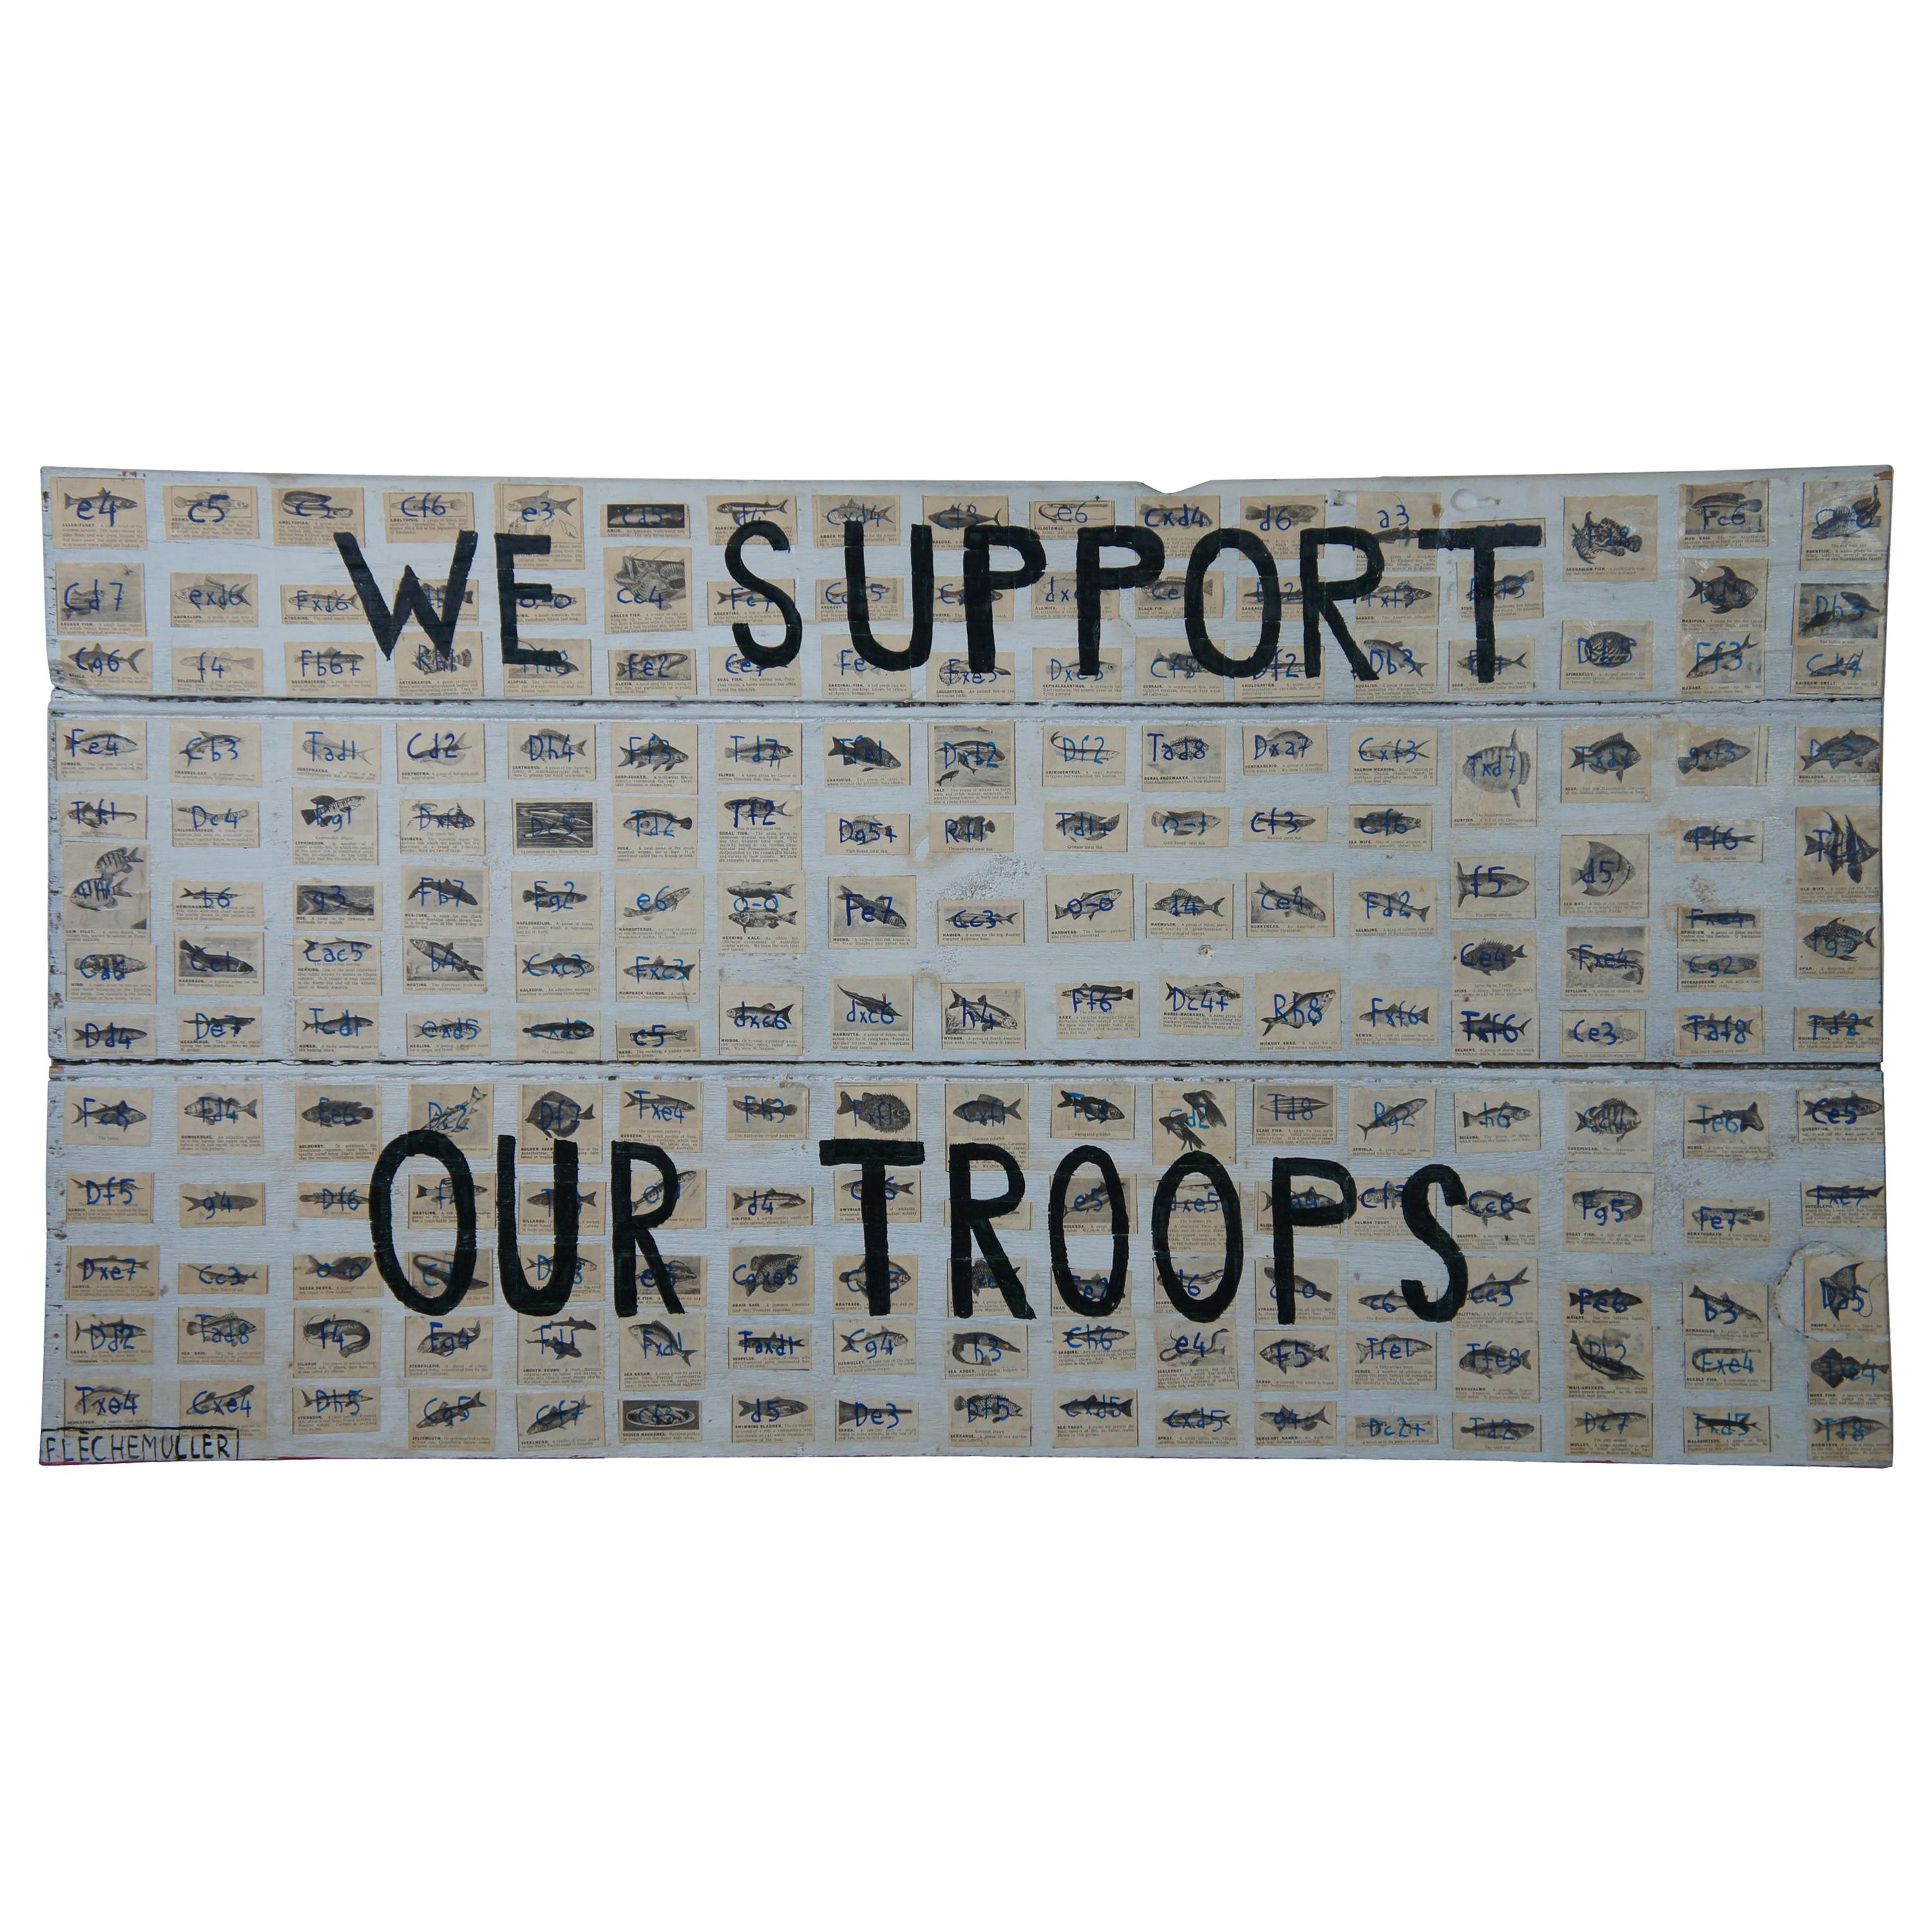 We Support Our Troops Original Decoupage by Jacques Flèchemuller Mixed-Media